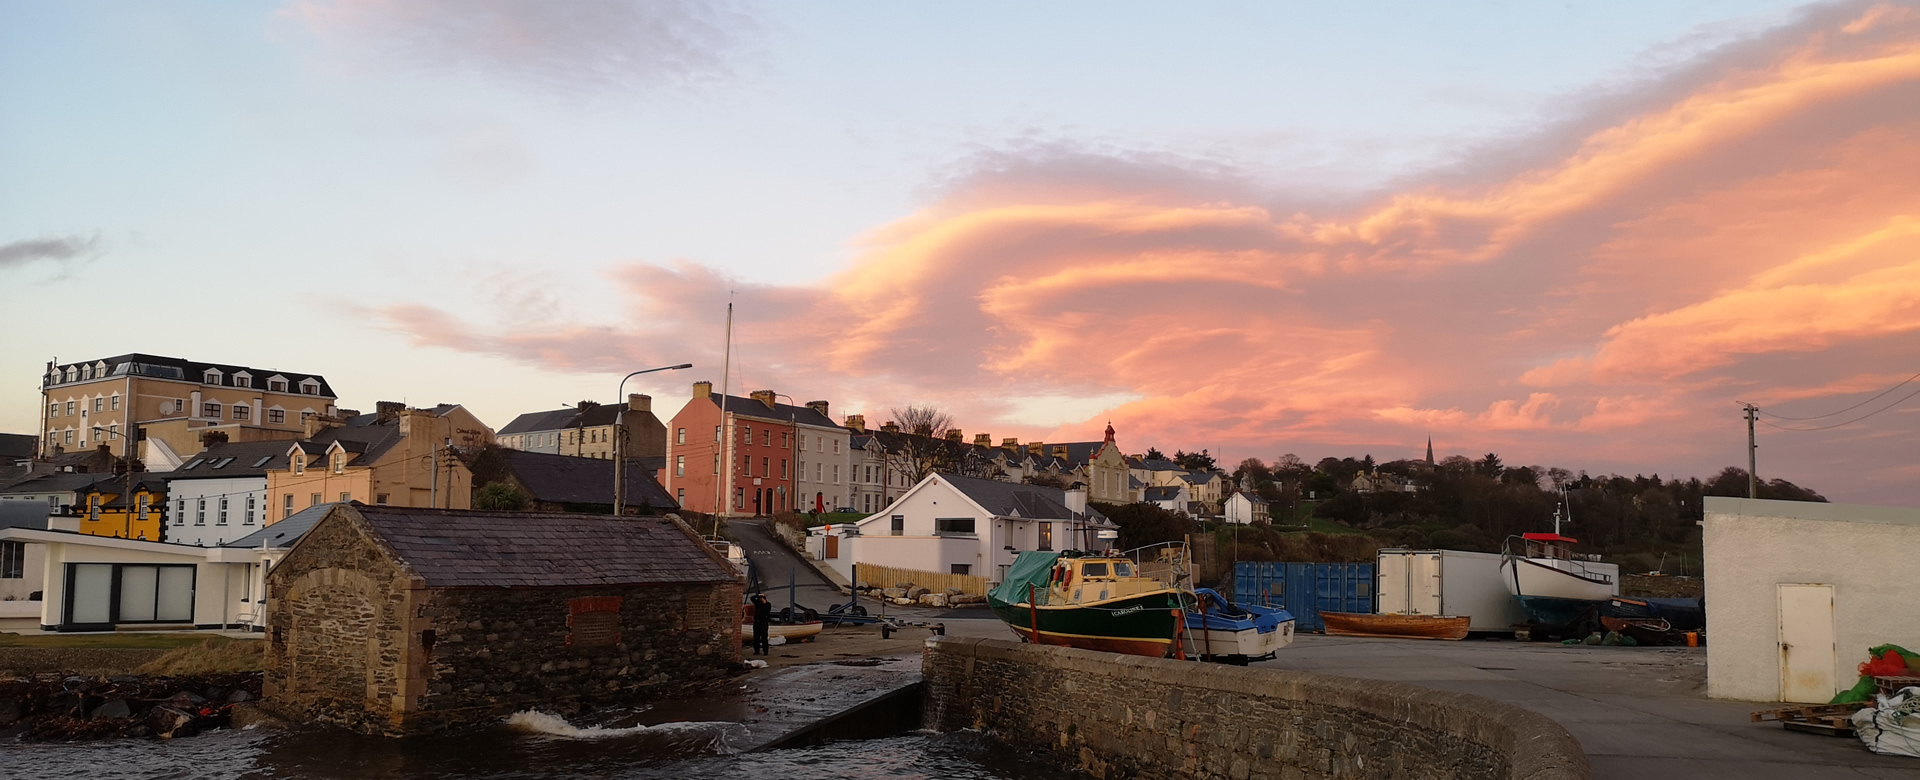 late-evening-moville-donegal.jpg